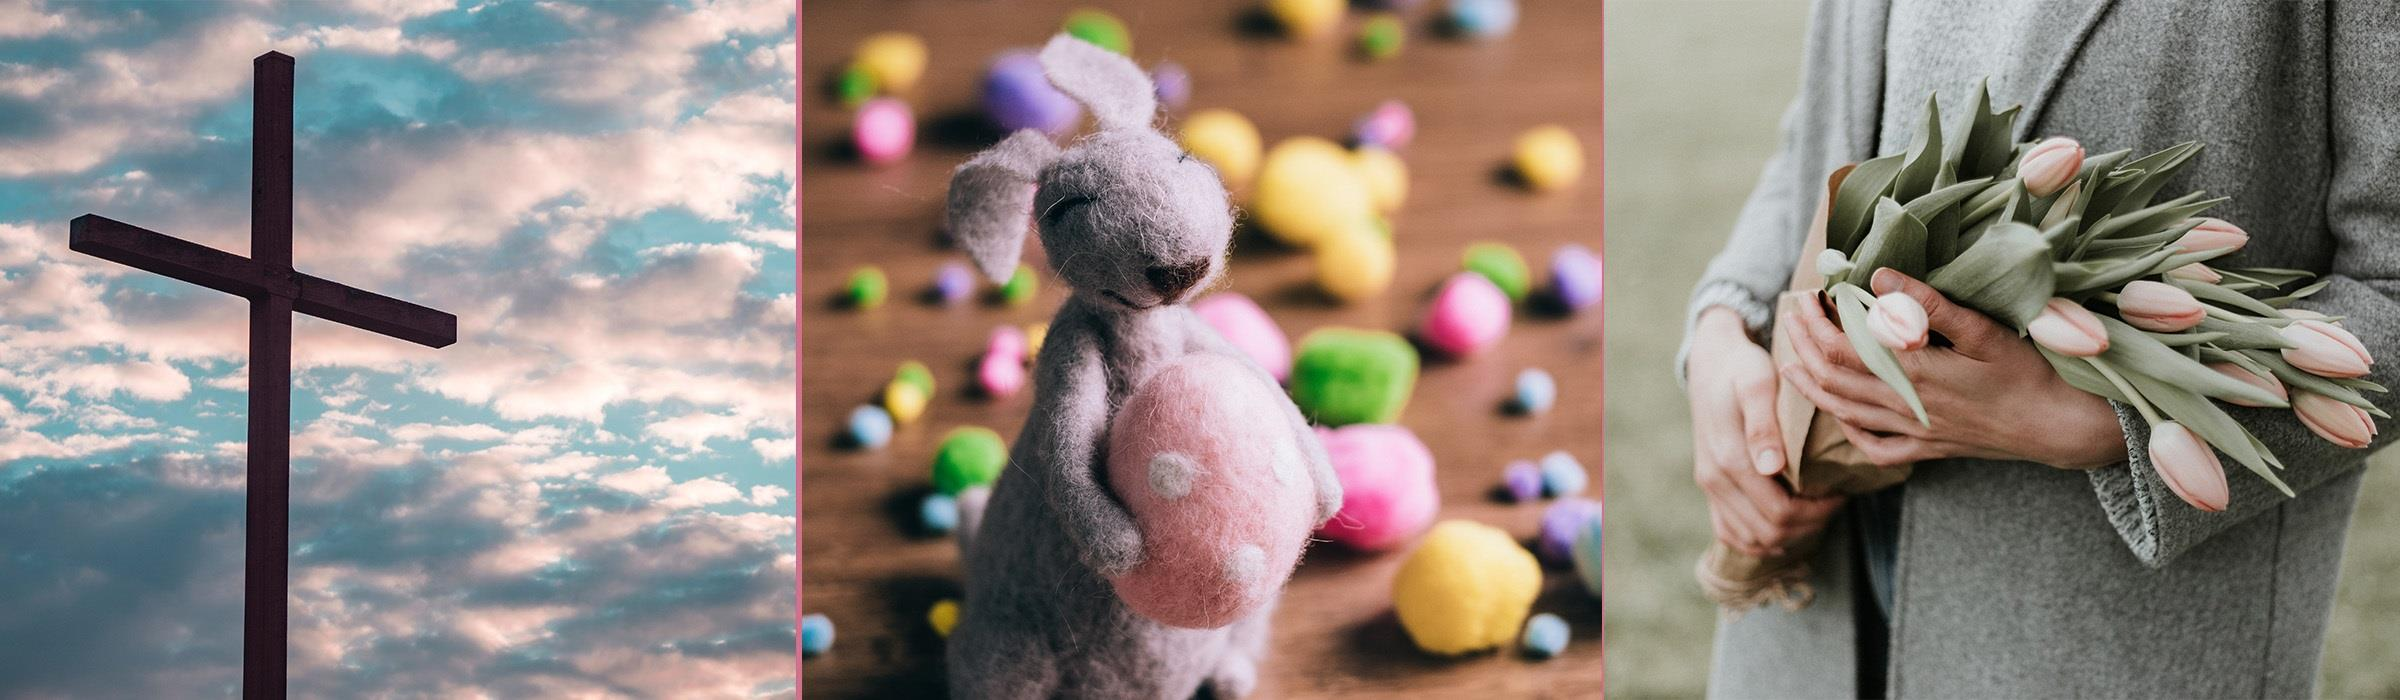 Easter Gifting Traditions